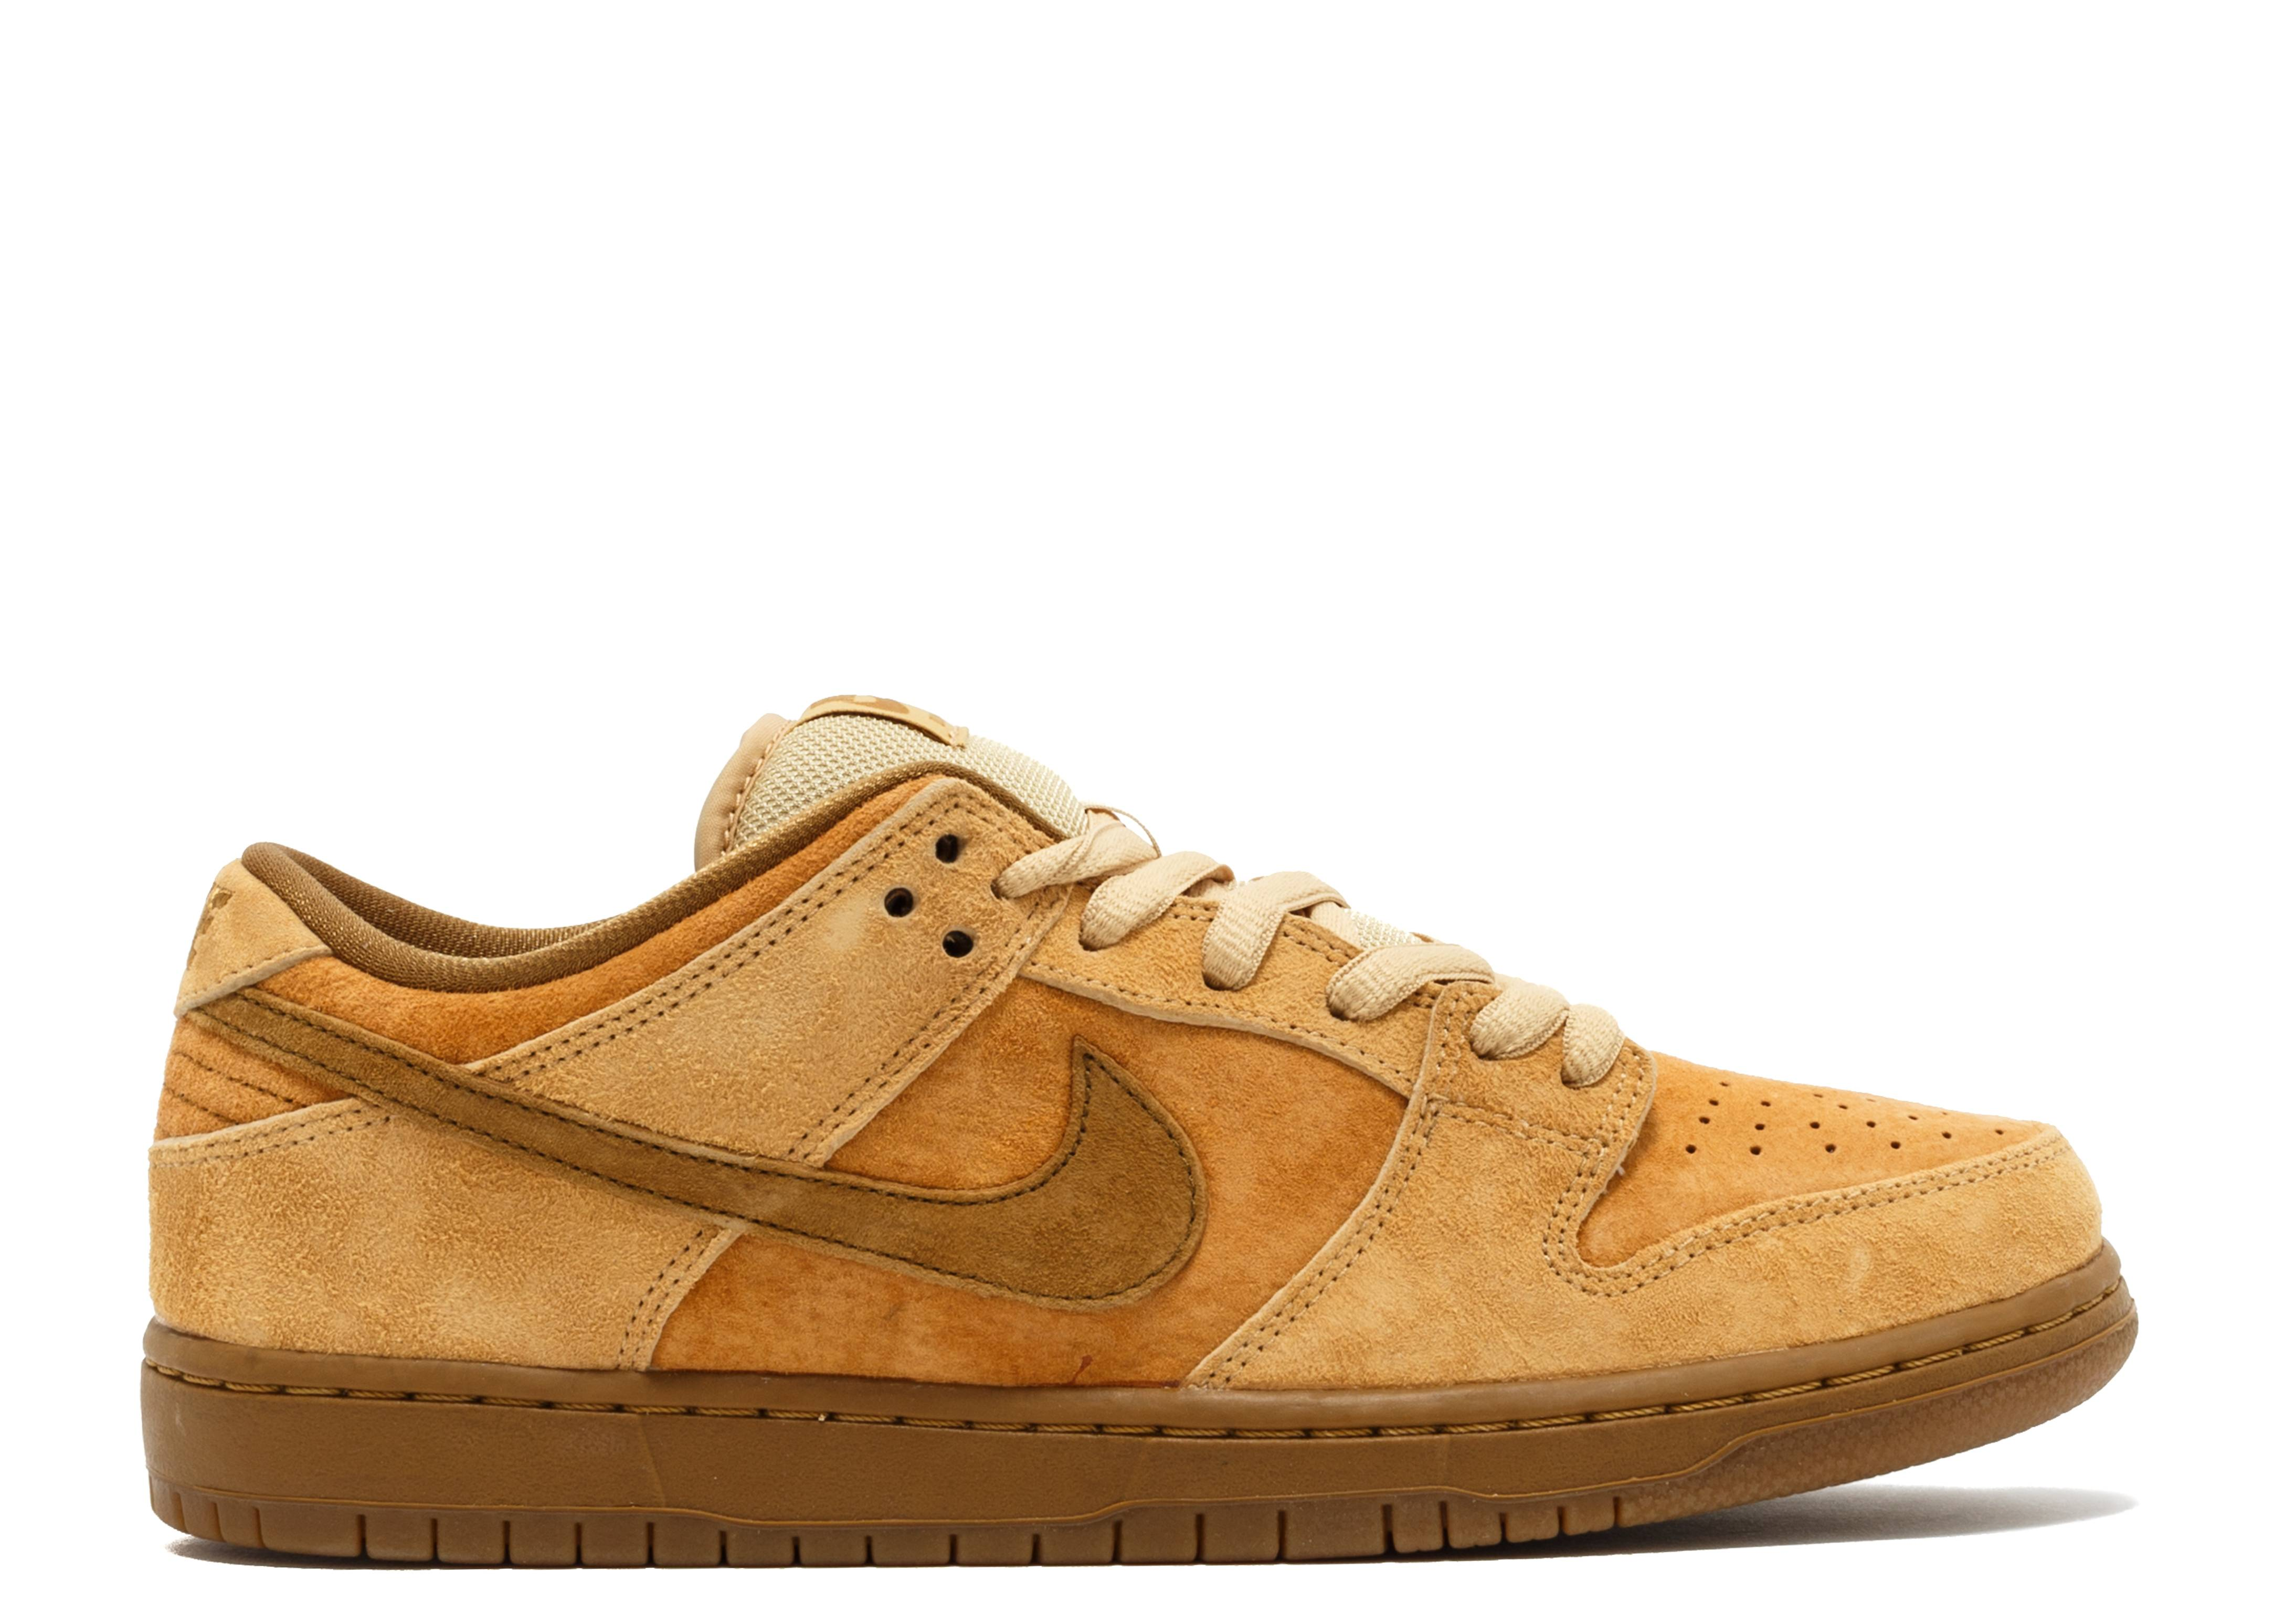 Nike Air Dunk Tan Brown Size 9.5